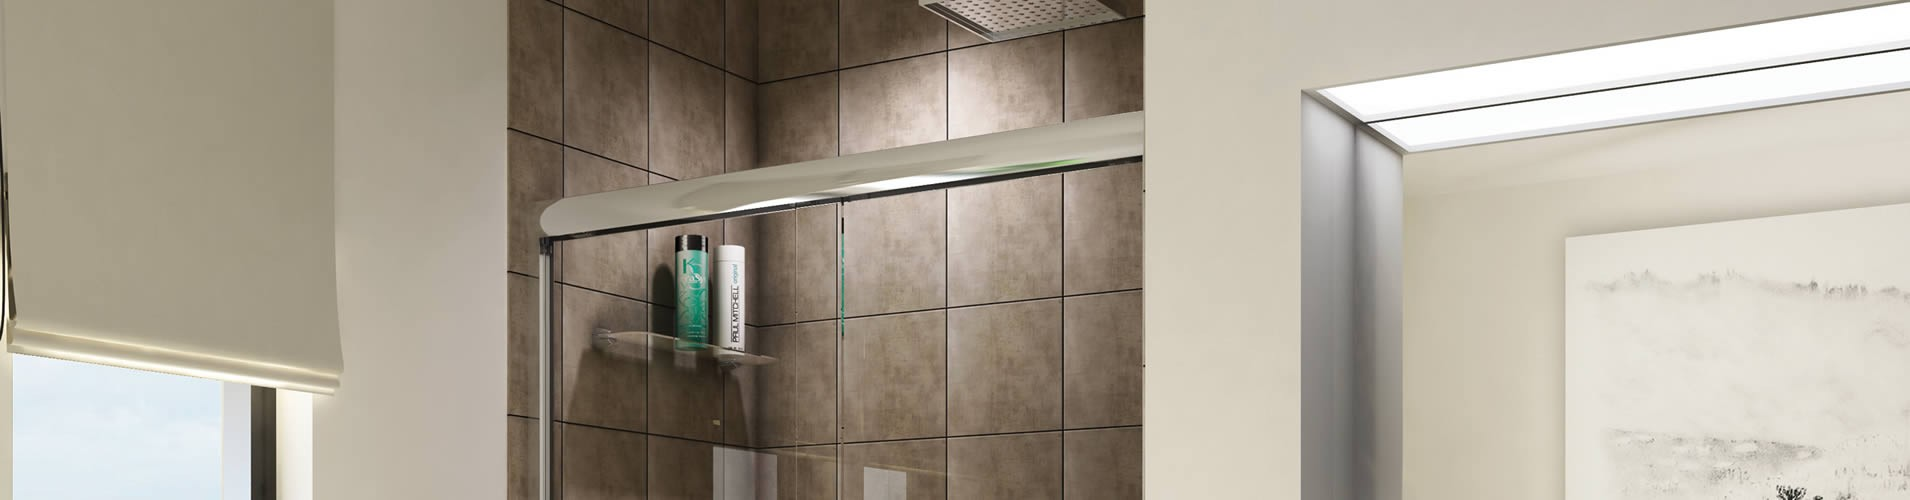 Semi-Framed Glass Shower Doors - Atlanta, Georgia